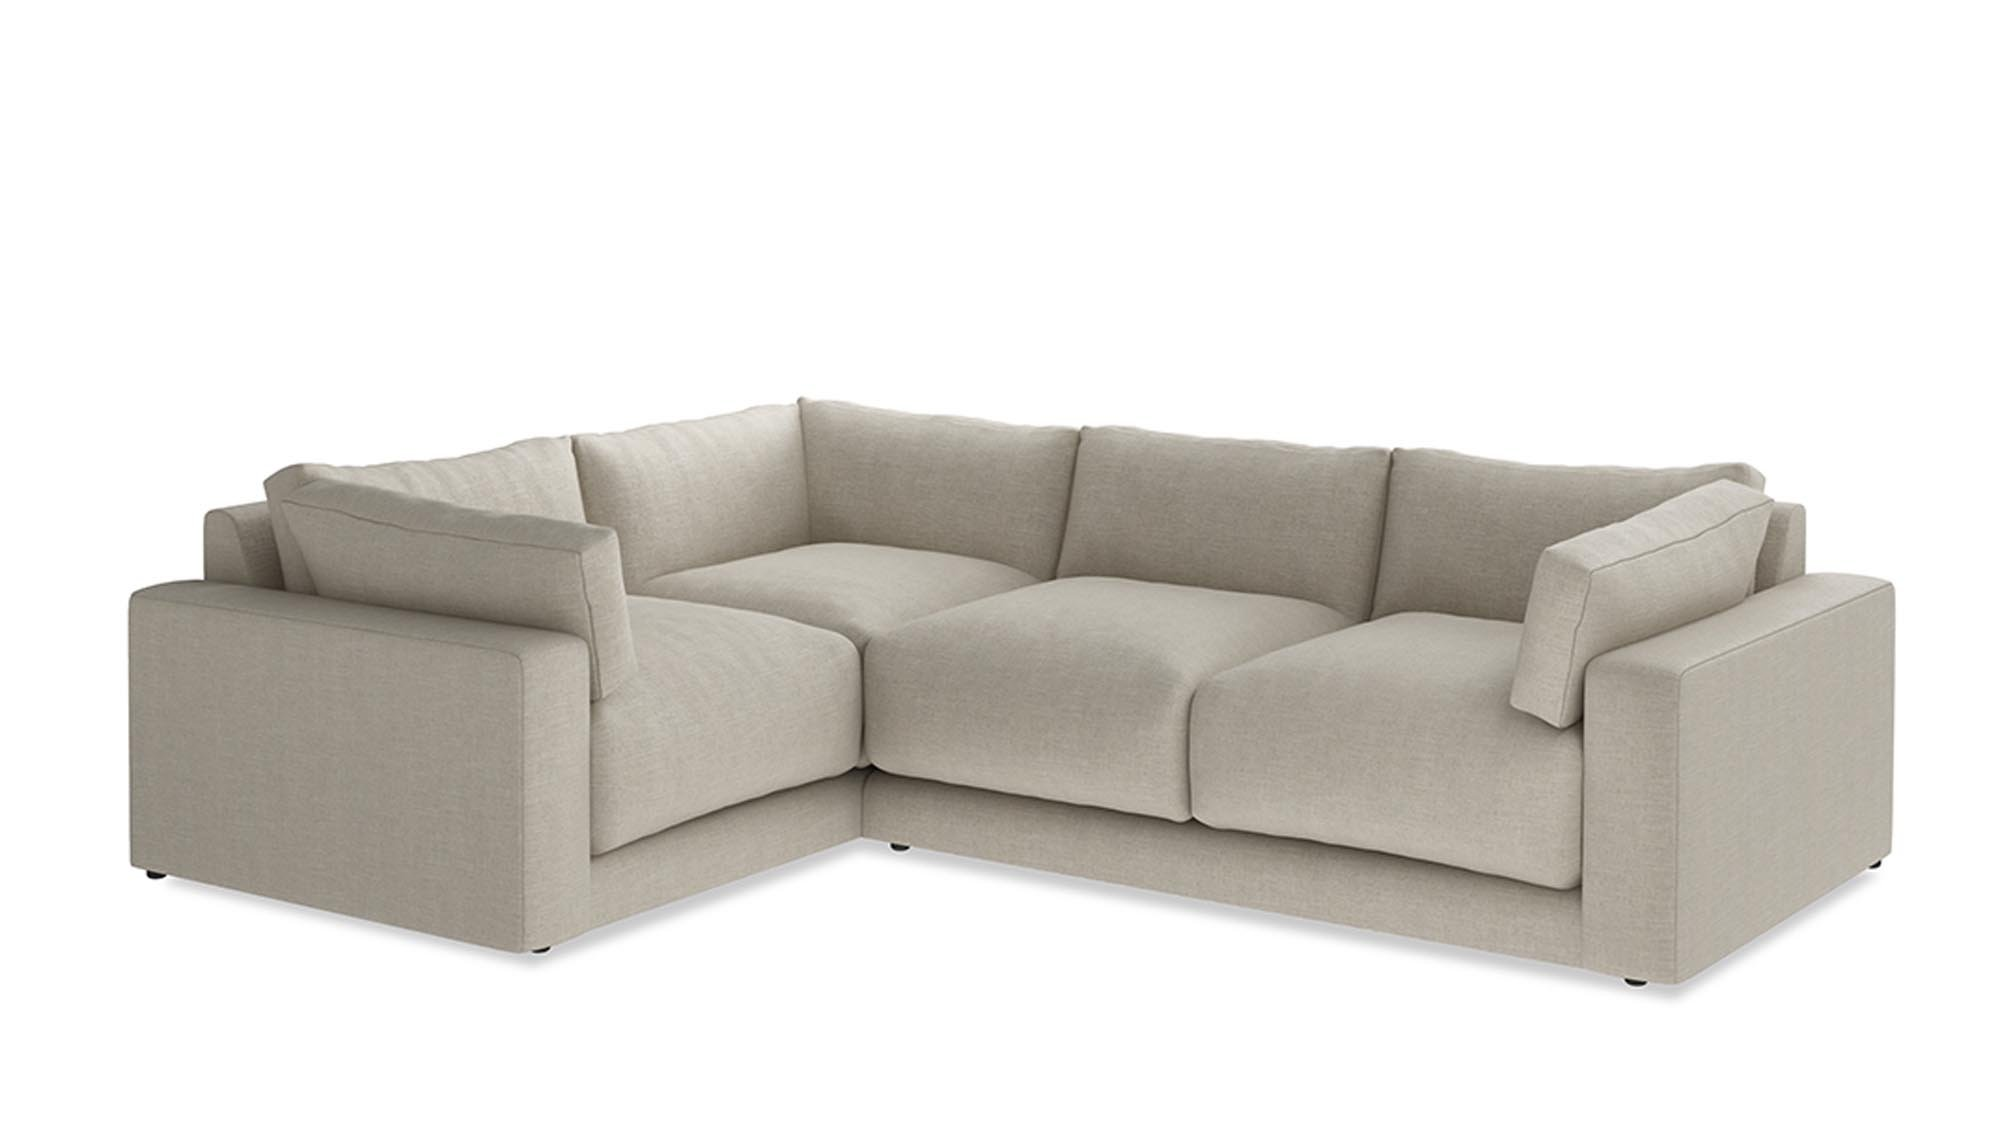 Best sofa 2017 find the perfect sofa for your living room from corner sofas first took off in the 1970s when open plan living became popular now theyre back in vogue with this british made option from loaf a fabulous parisarafo Gallery